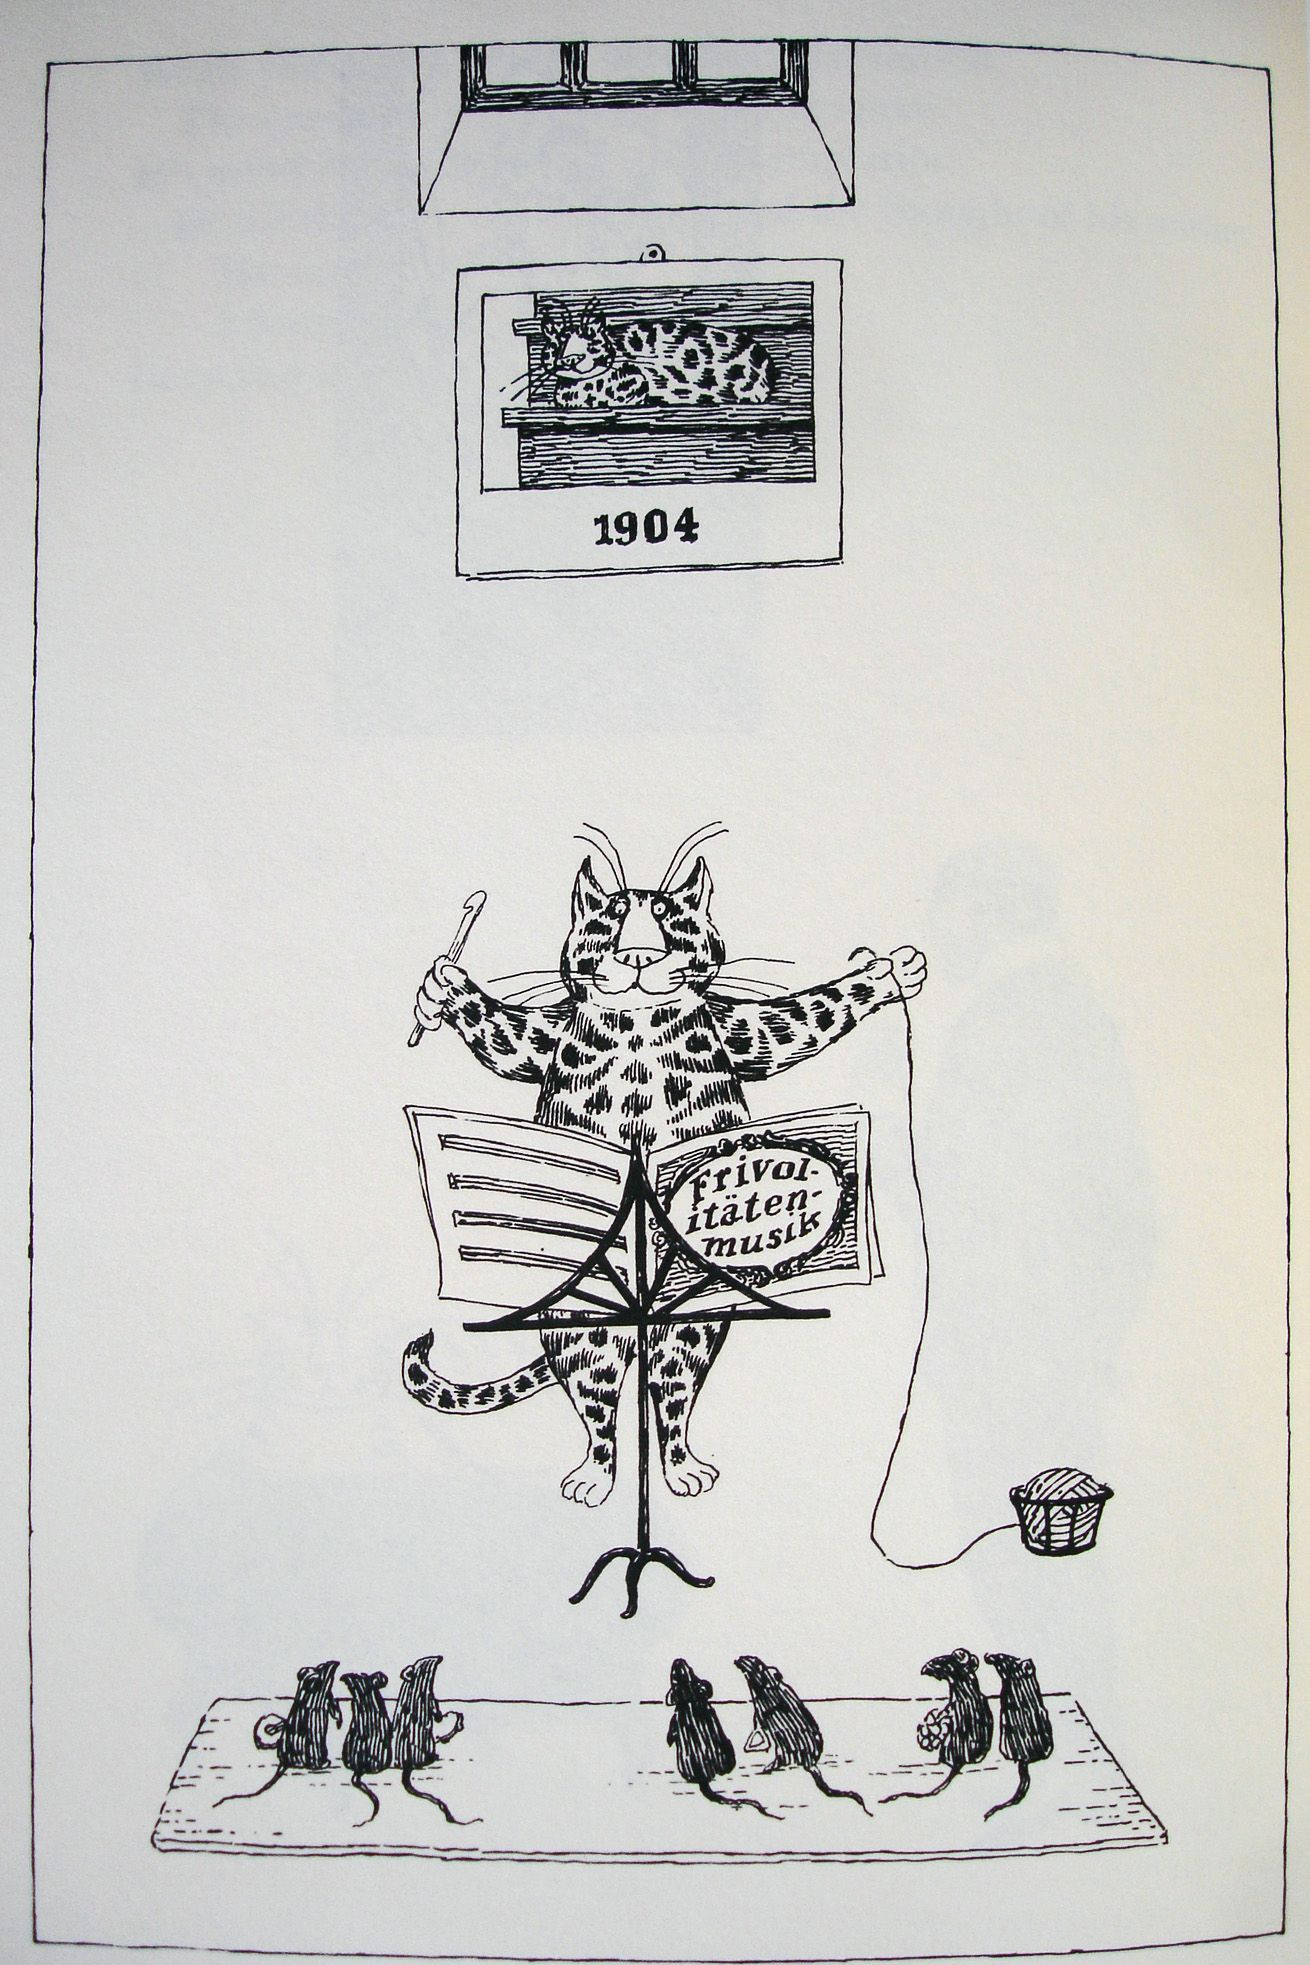 Old Possum's Book of Practical Cats byt T. S. Eliot, illustrated by Edward  Gorey